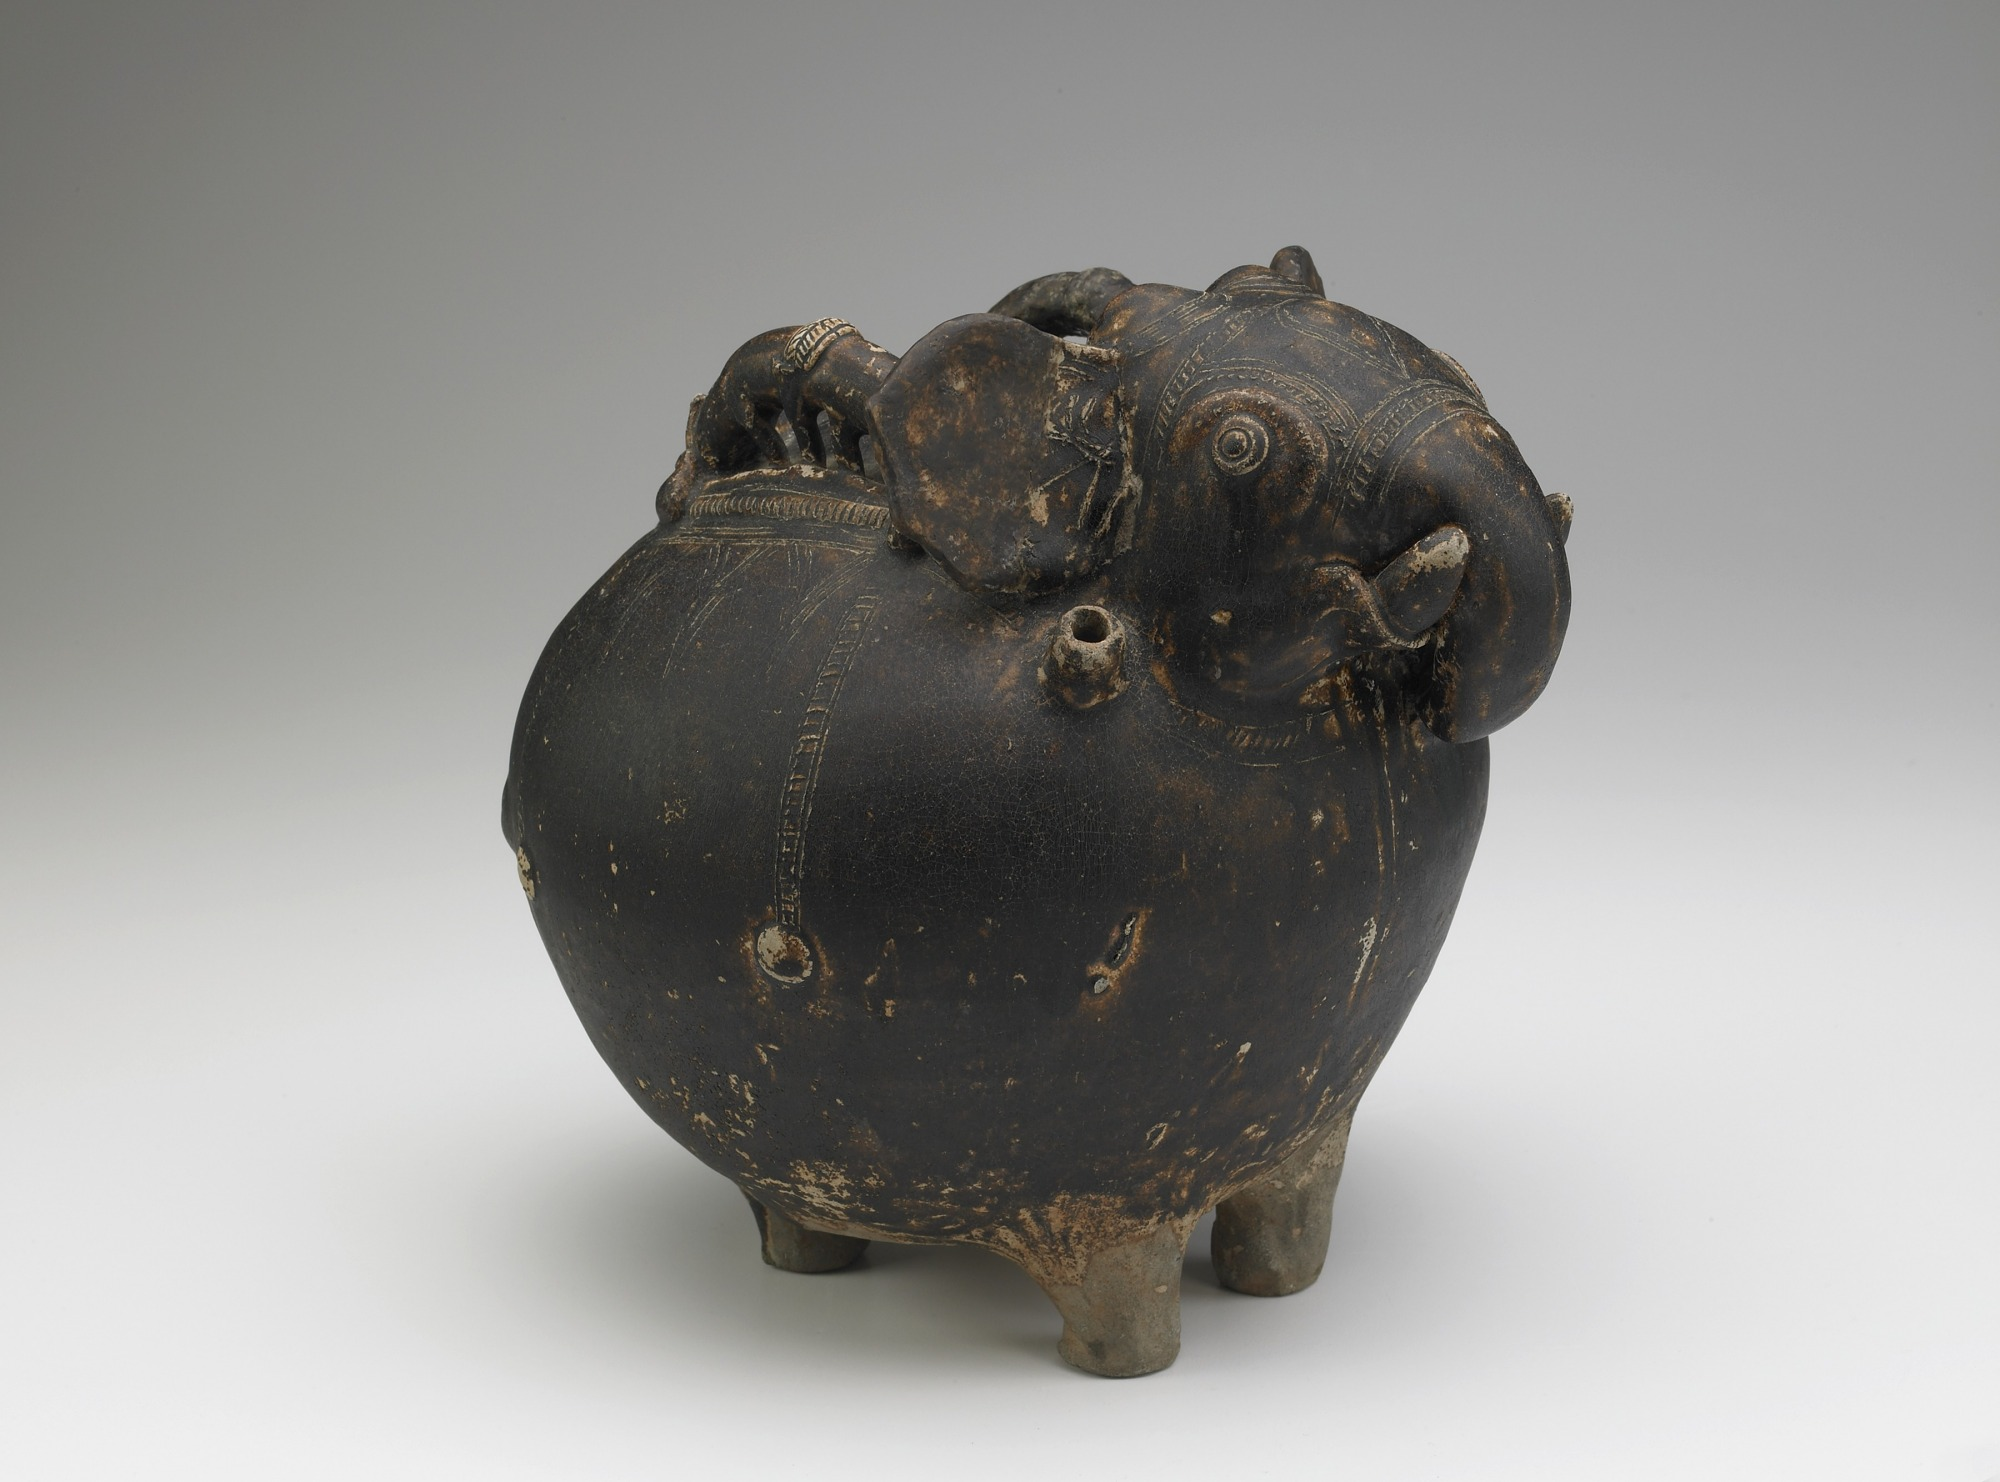 vessel: Pouring vessel in the form of a caparisoned elephant, with a spout on the shoulder